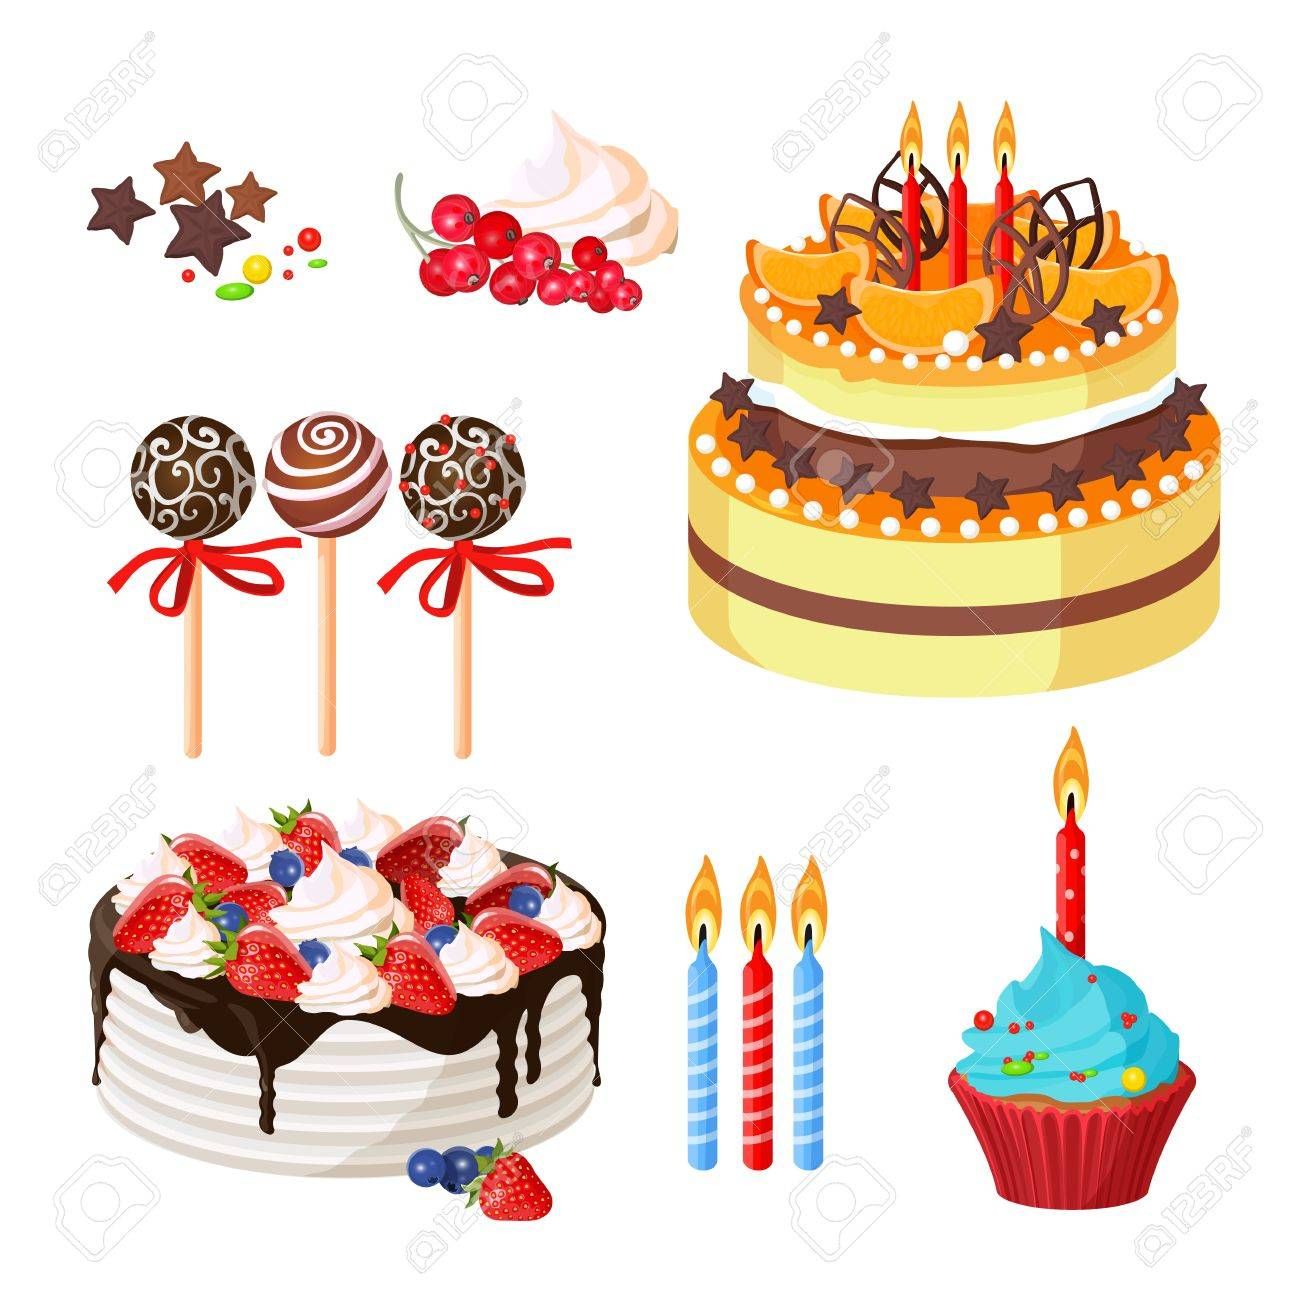 Birthday Cakes And Attributes Colorful Poster On White Royalty Free